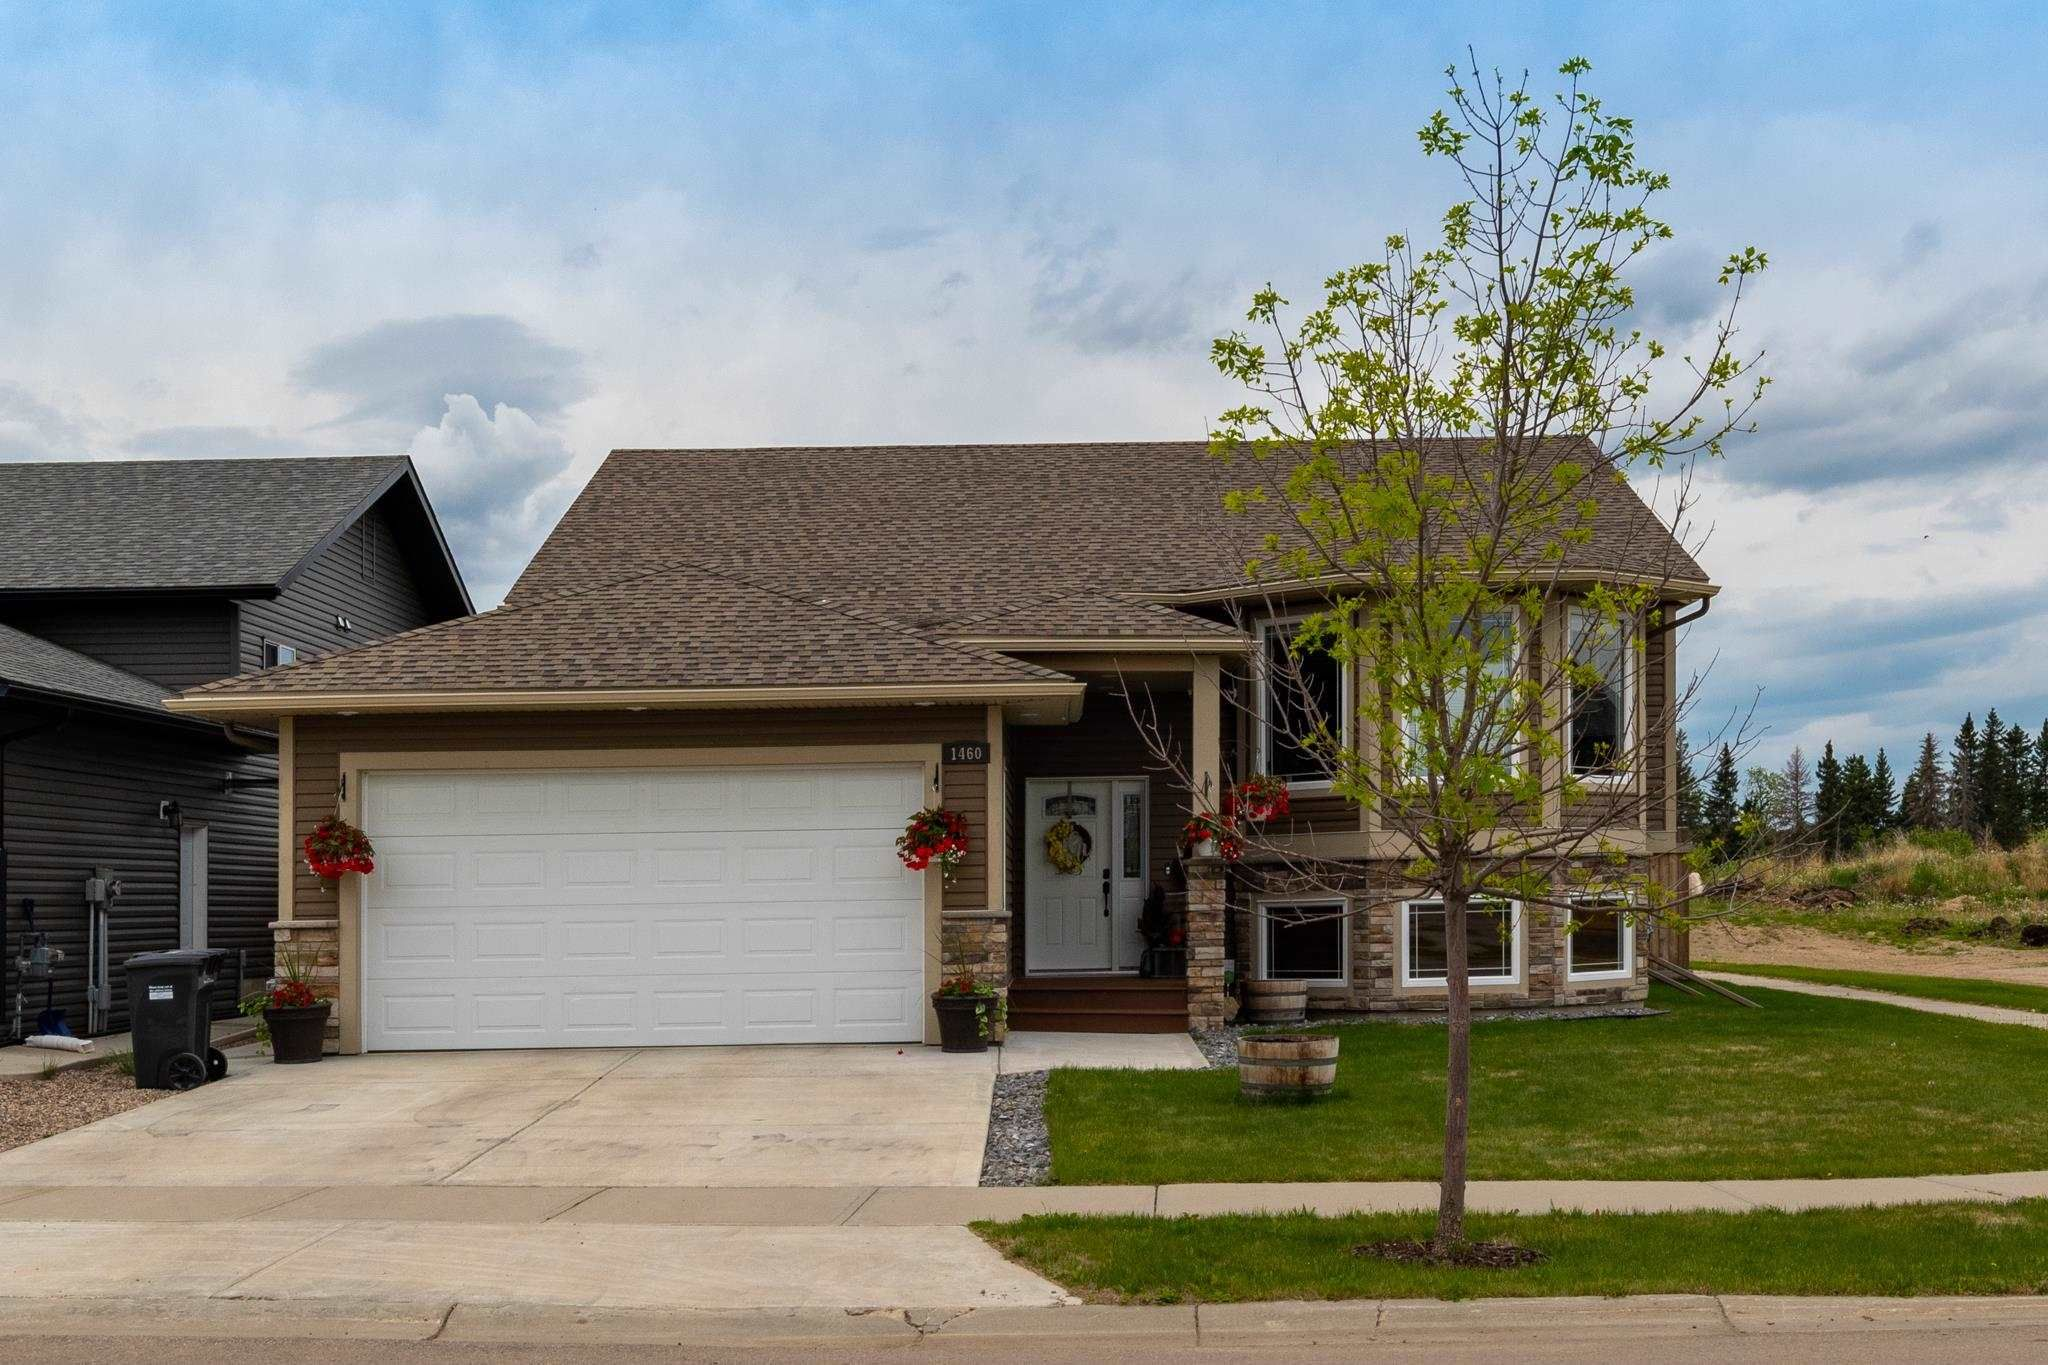 Main Photo: 1460 Wildrye Crescent: Cold Lake House for sale : MLS®# E4248418